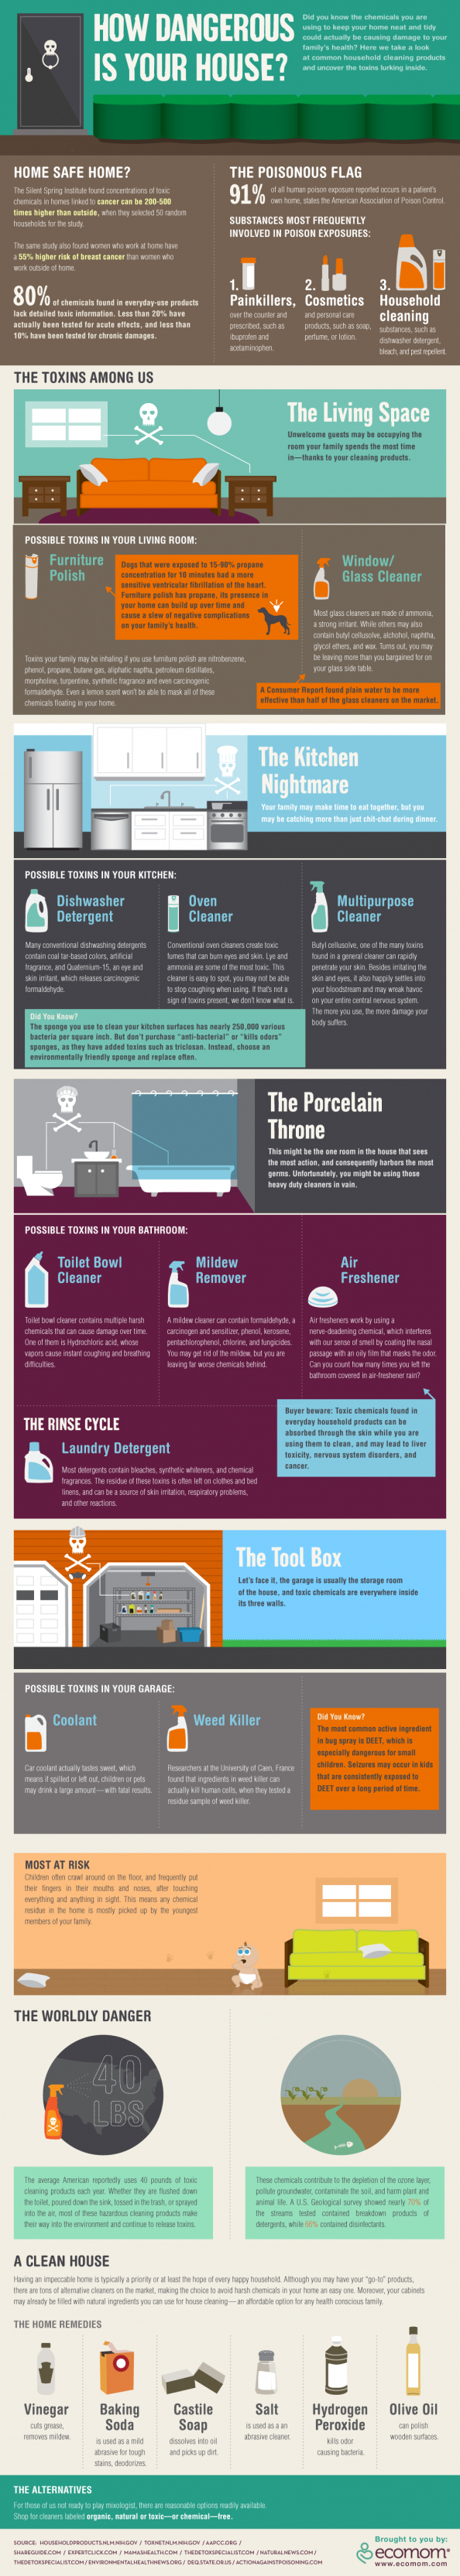 Surprise Toxins In Your Home Infographic